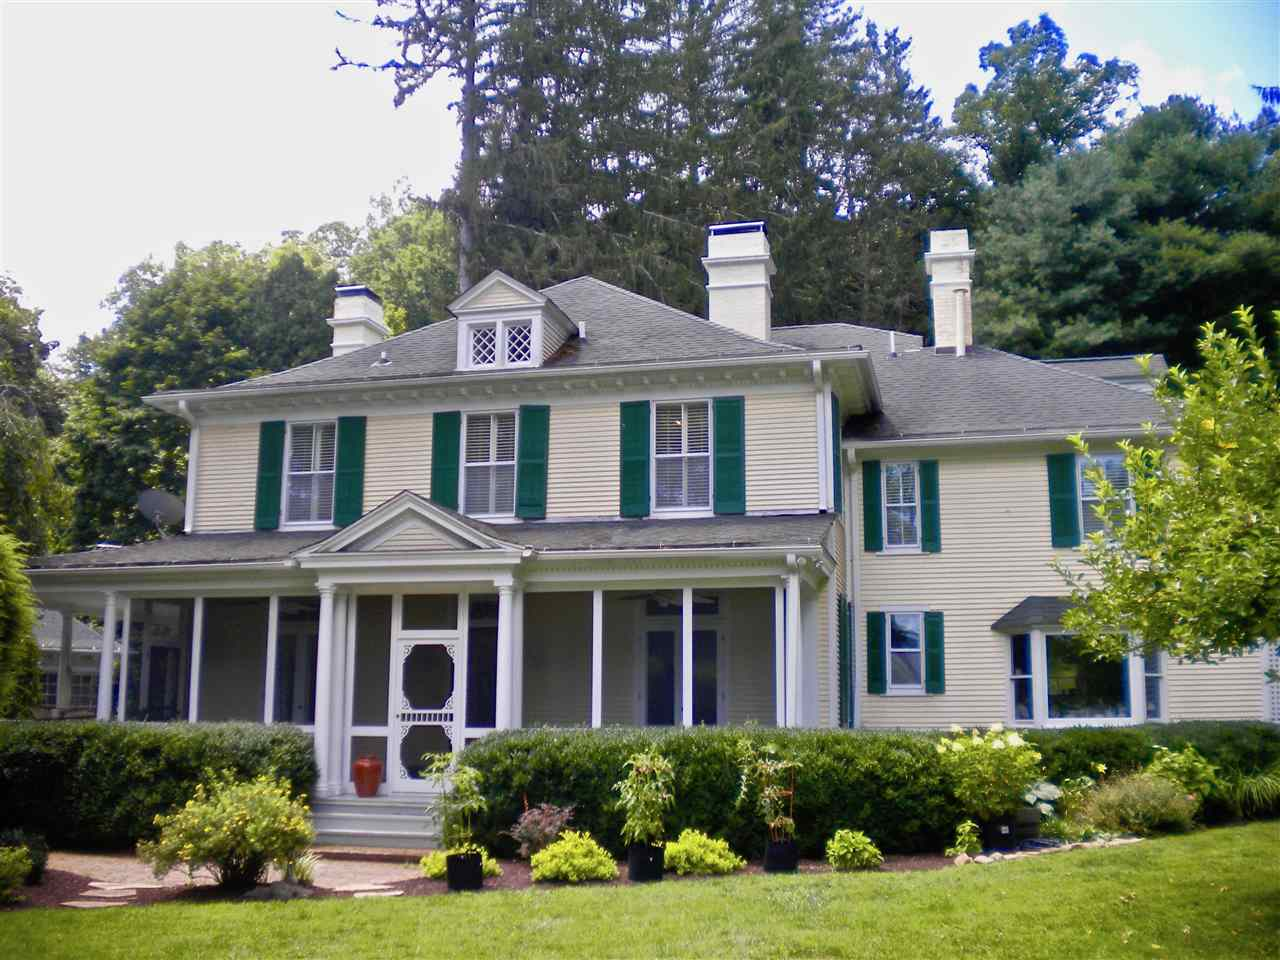 240 Frenchs Hill Dr, Hot Springs, VA, 24445